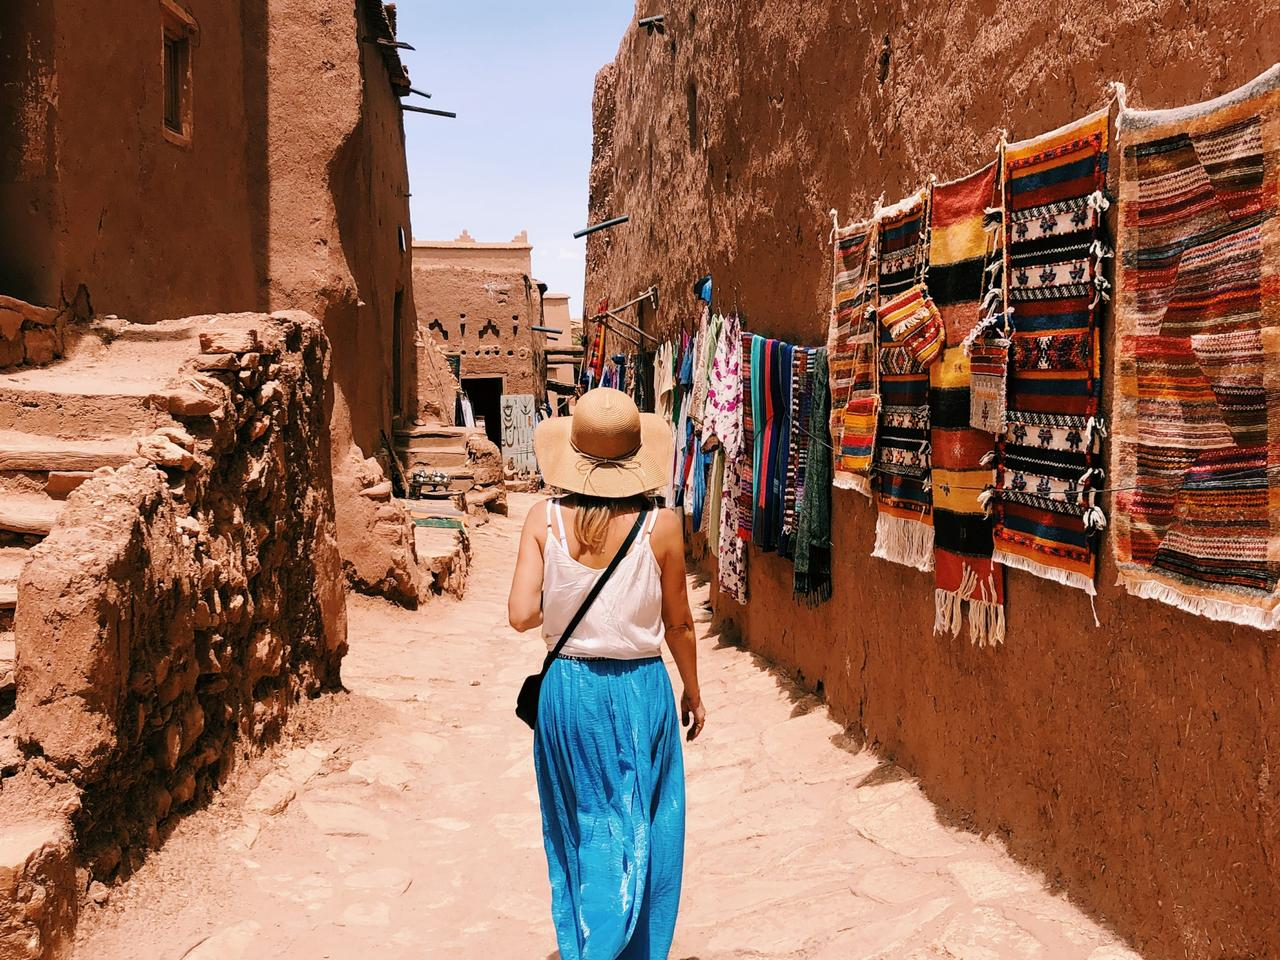 Young woman walking along narrow streets of Ait Ben Haddou village in Morocco